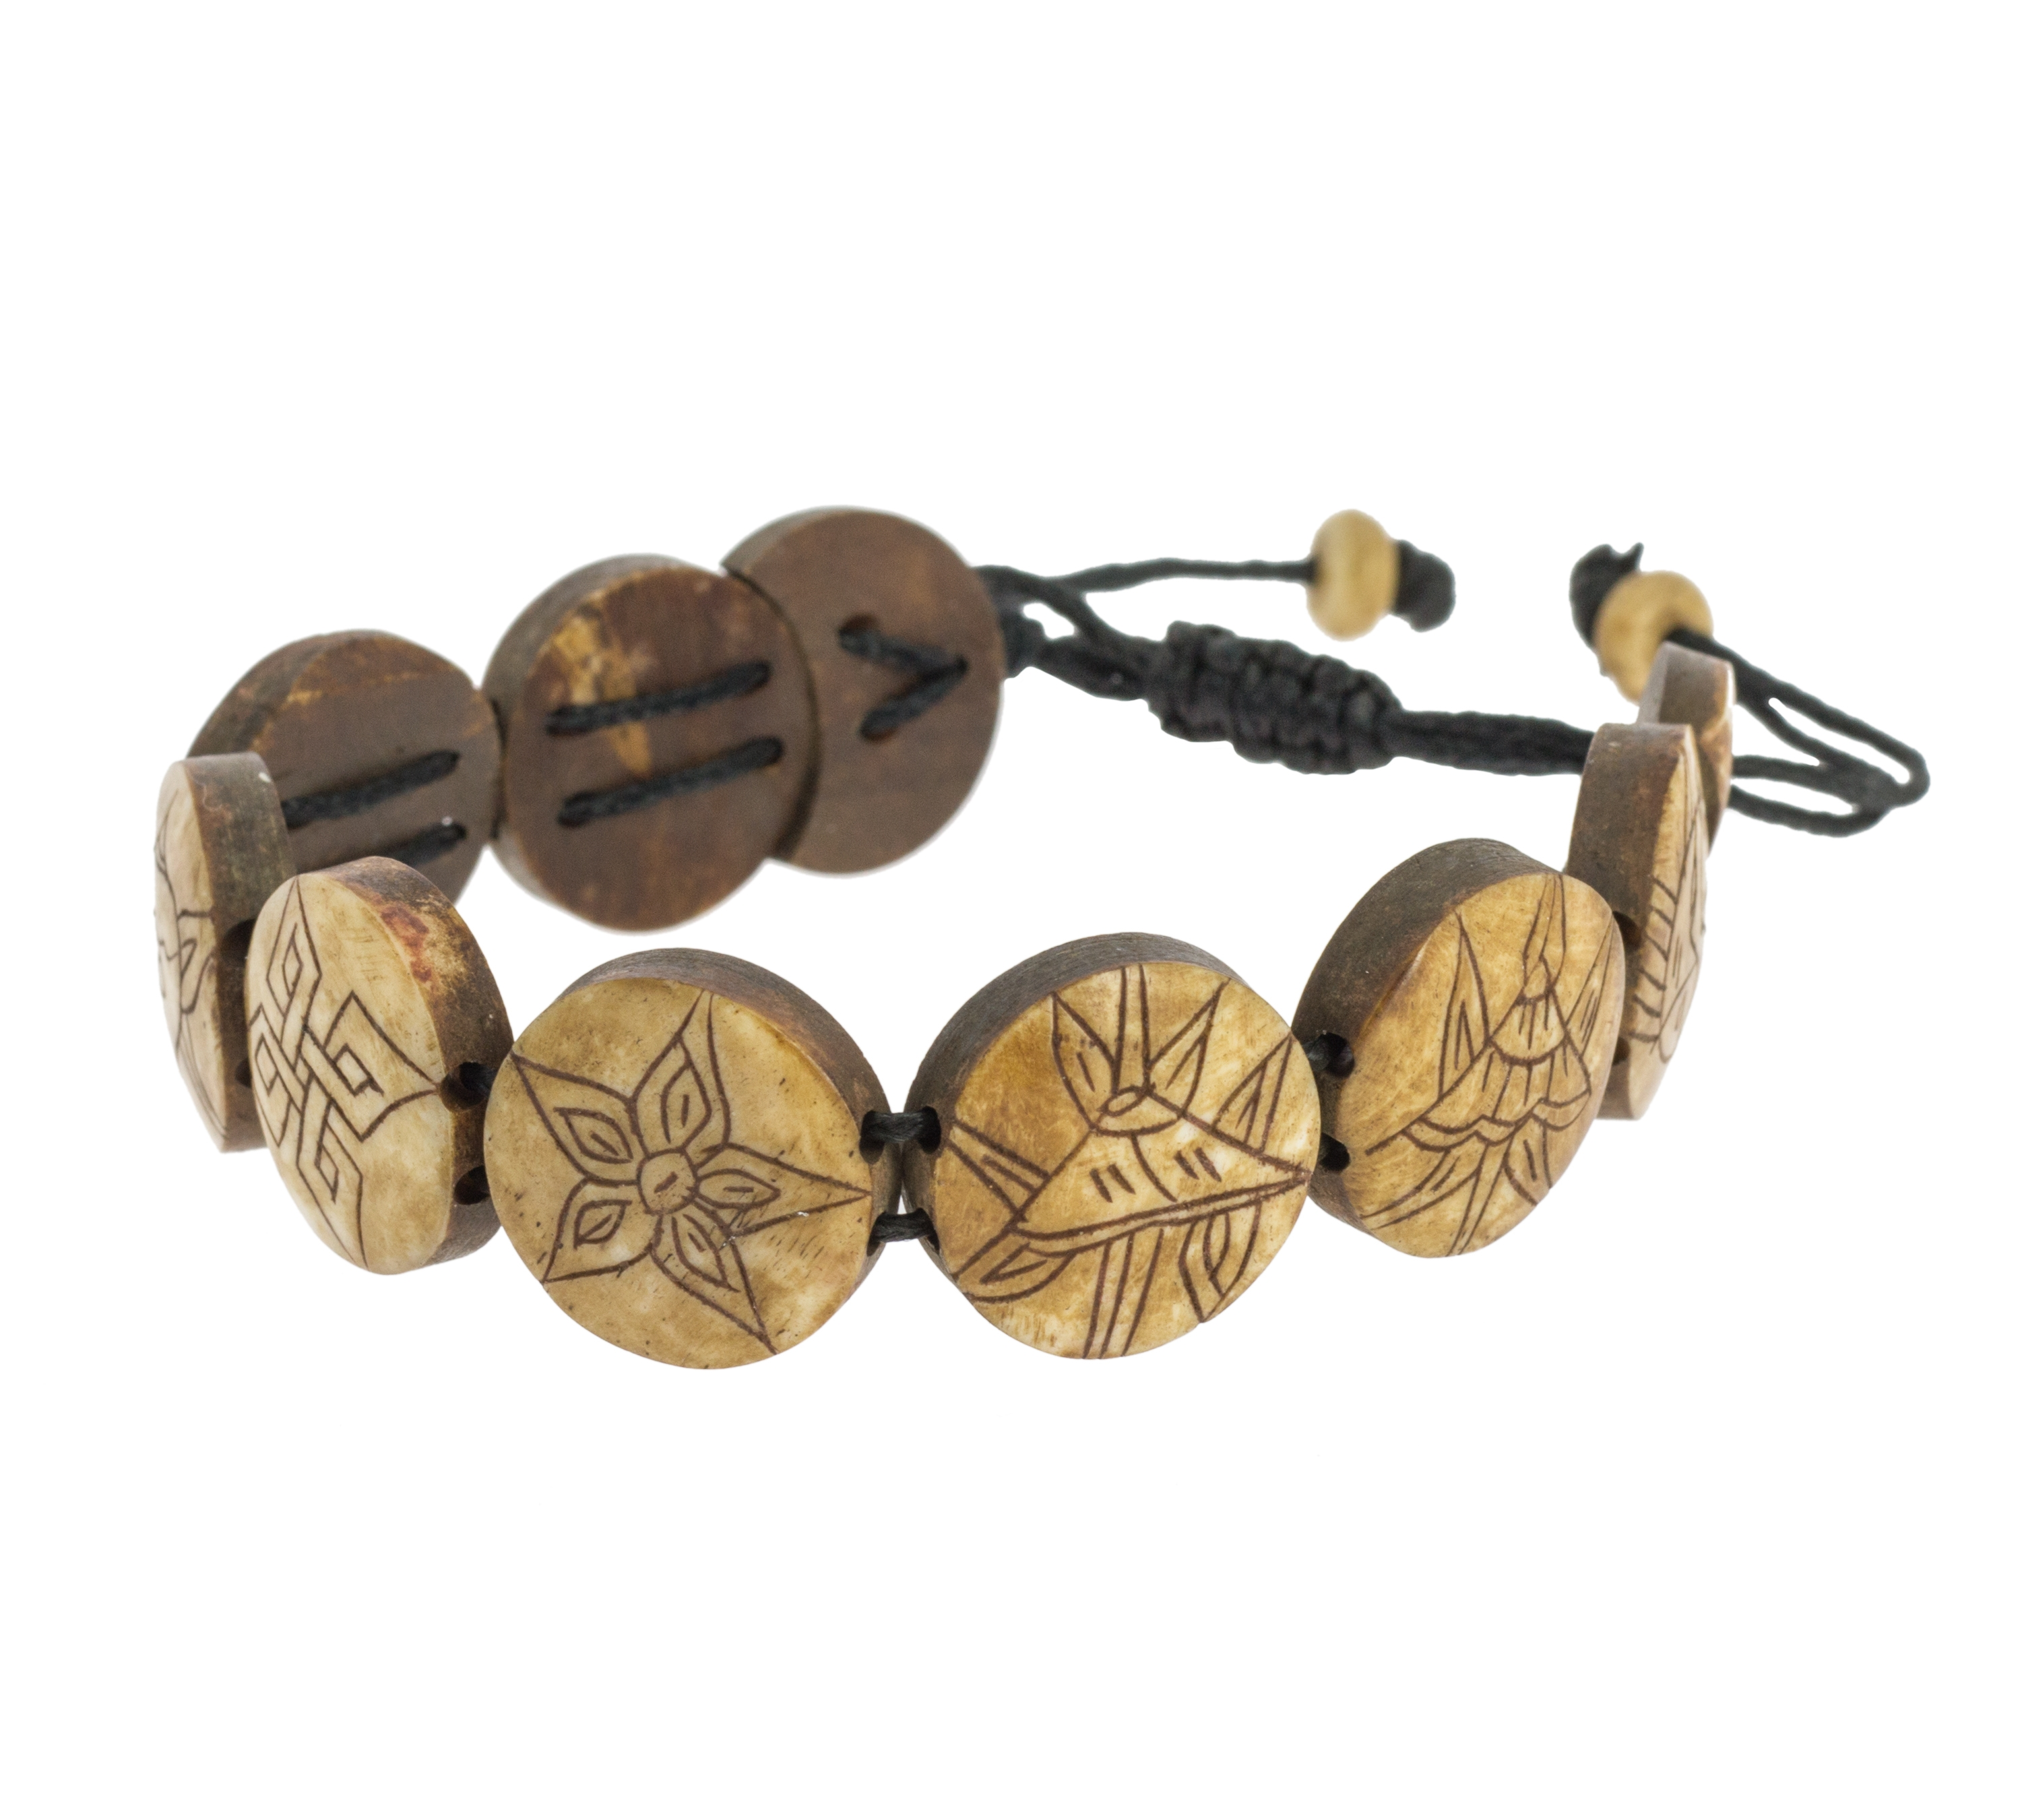 Eight Auspicious Symbols Bone Bracelet